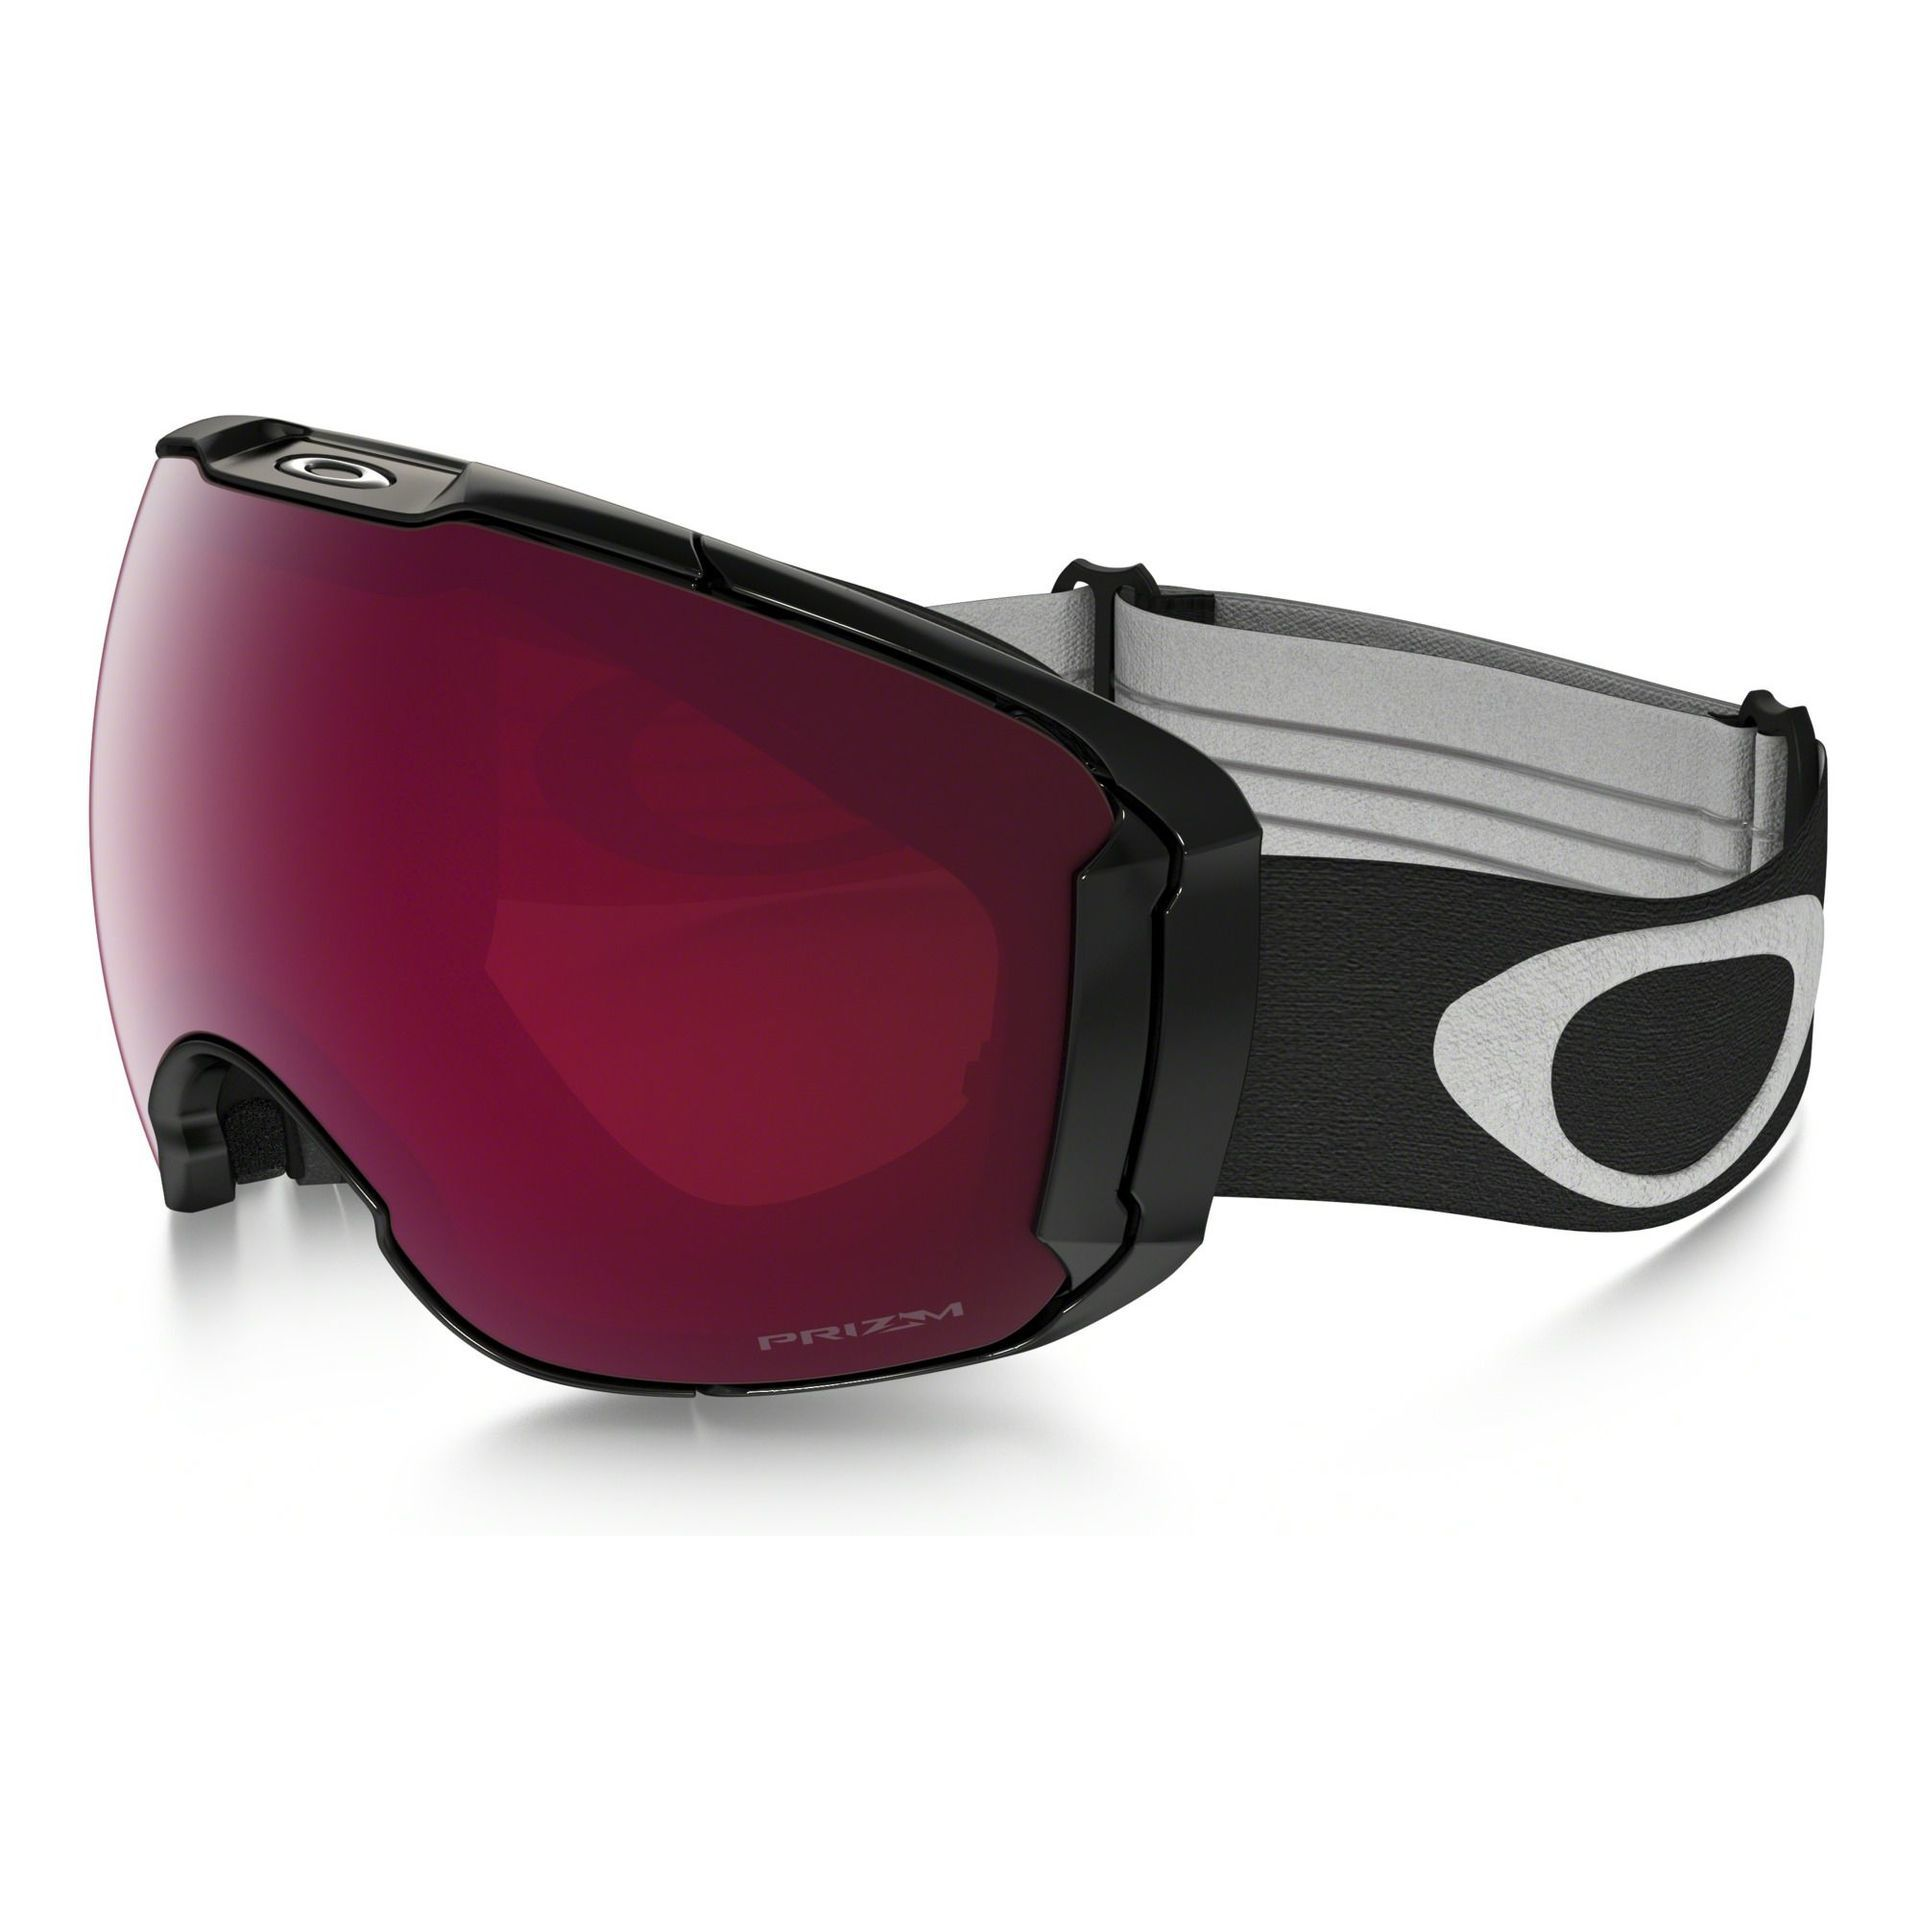 GOGLE OAKLEY AIRBRAKE XL JET BLACK PRIZM ROSE & DARK GREY